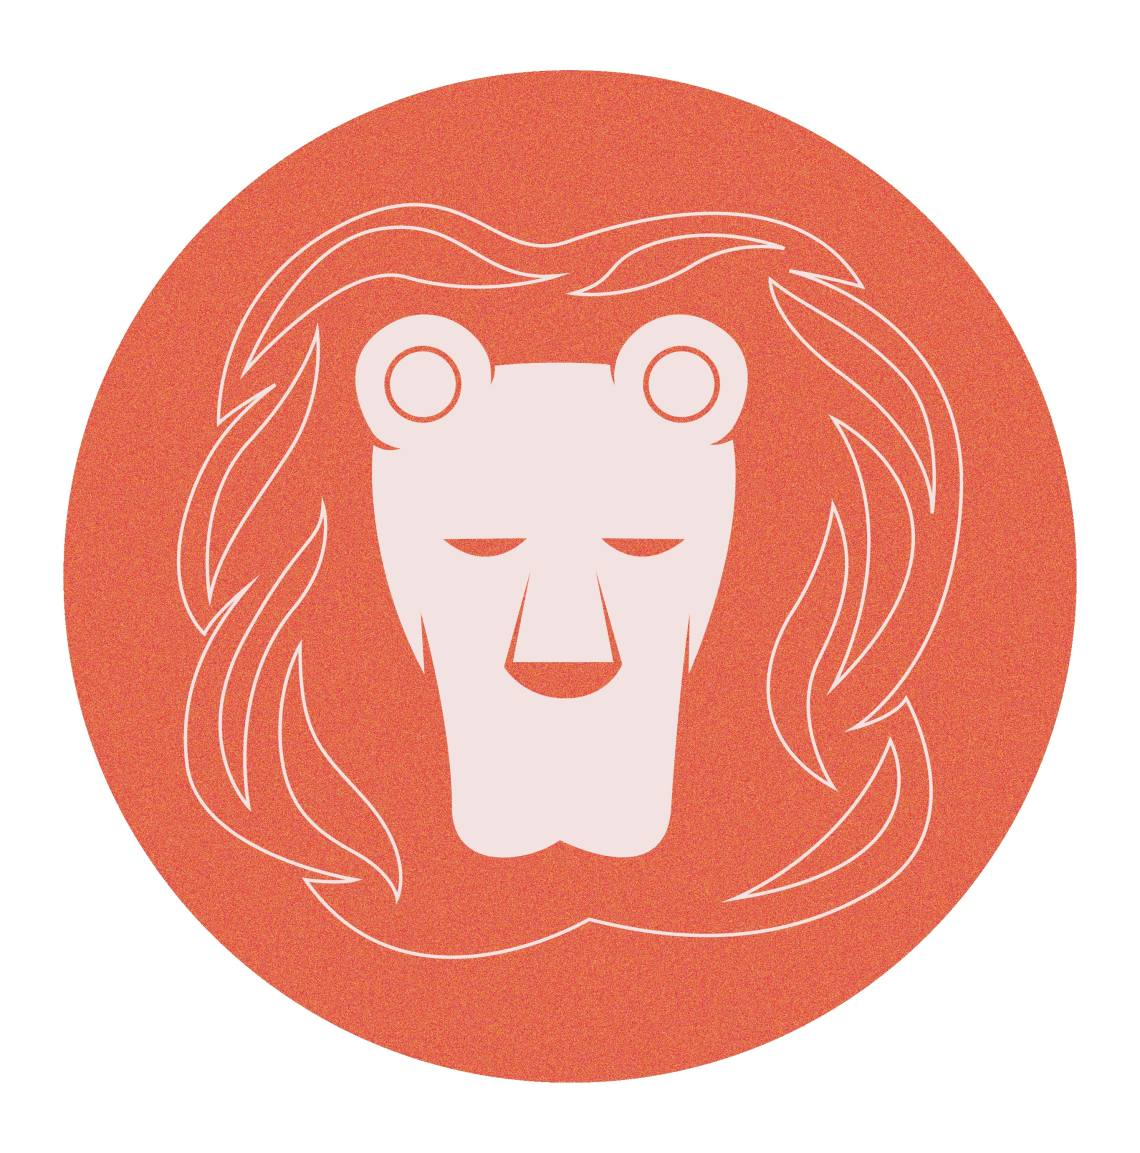 Find the daily horoscope for Leo zodiac signs for   September 7, 2021.